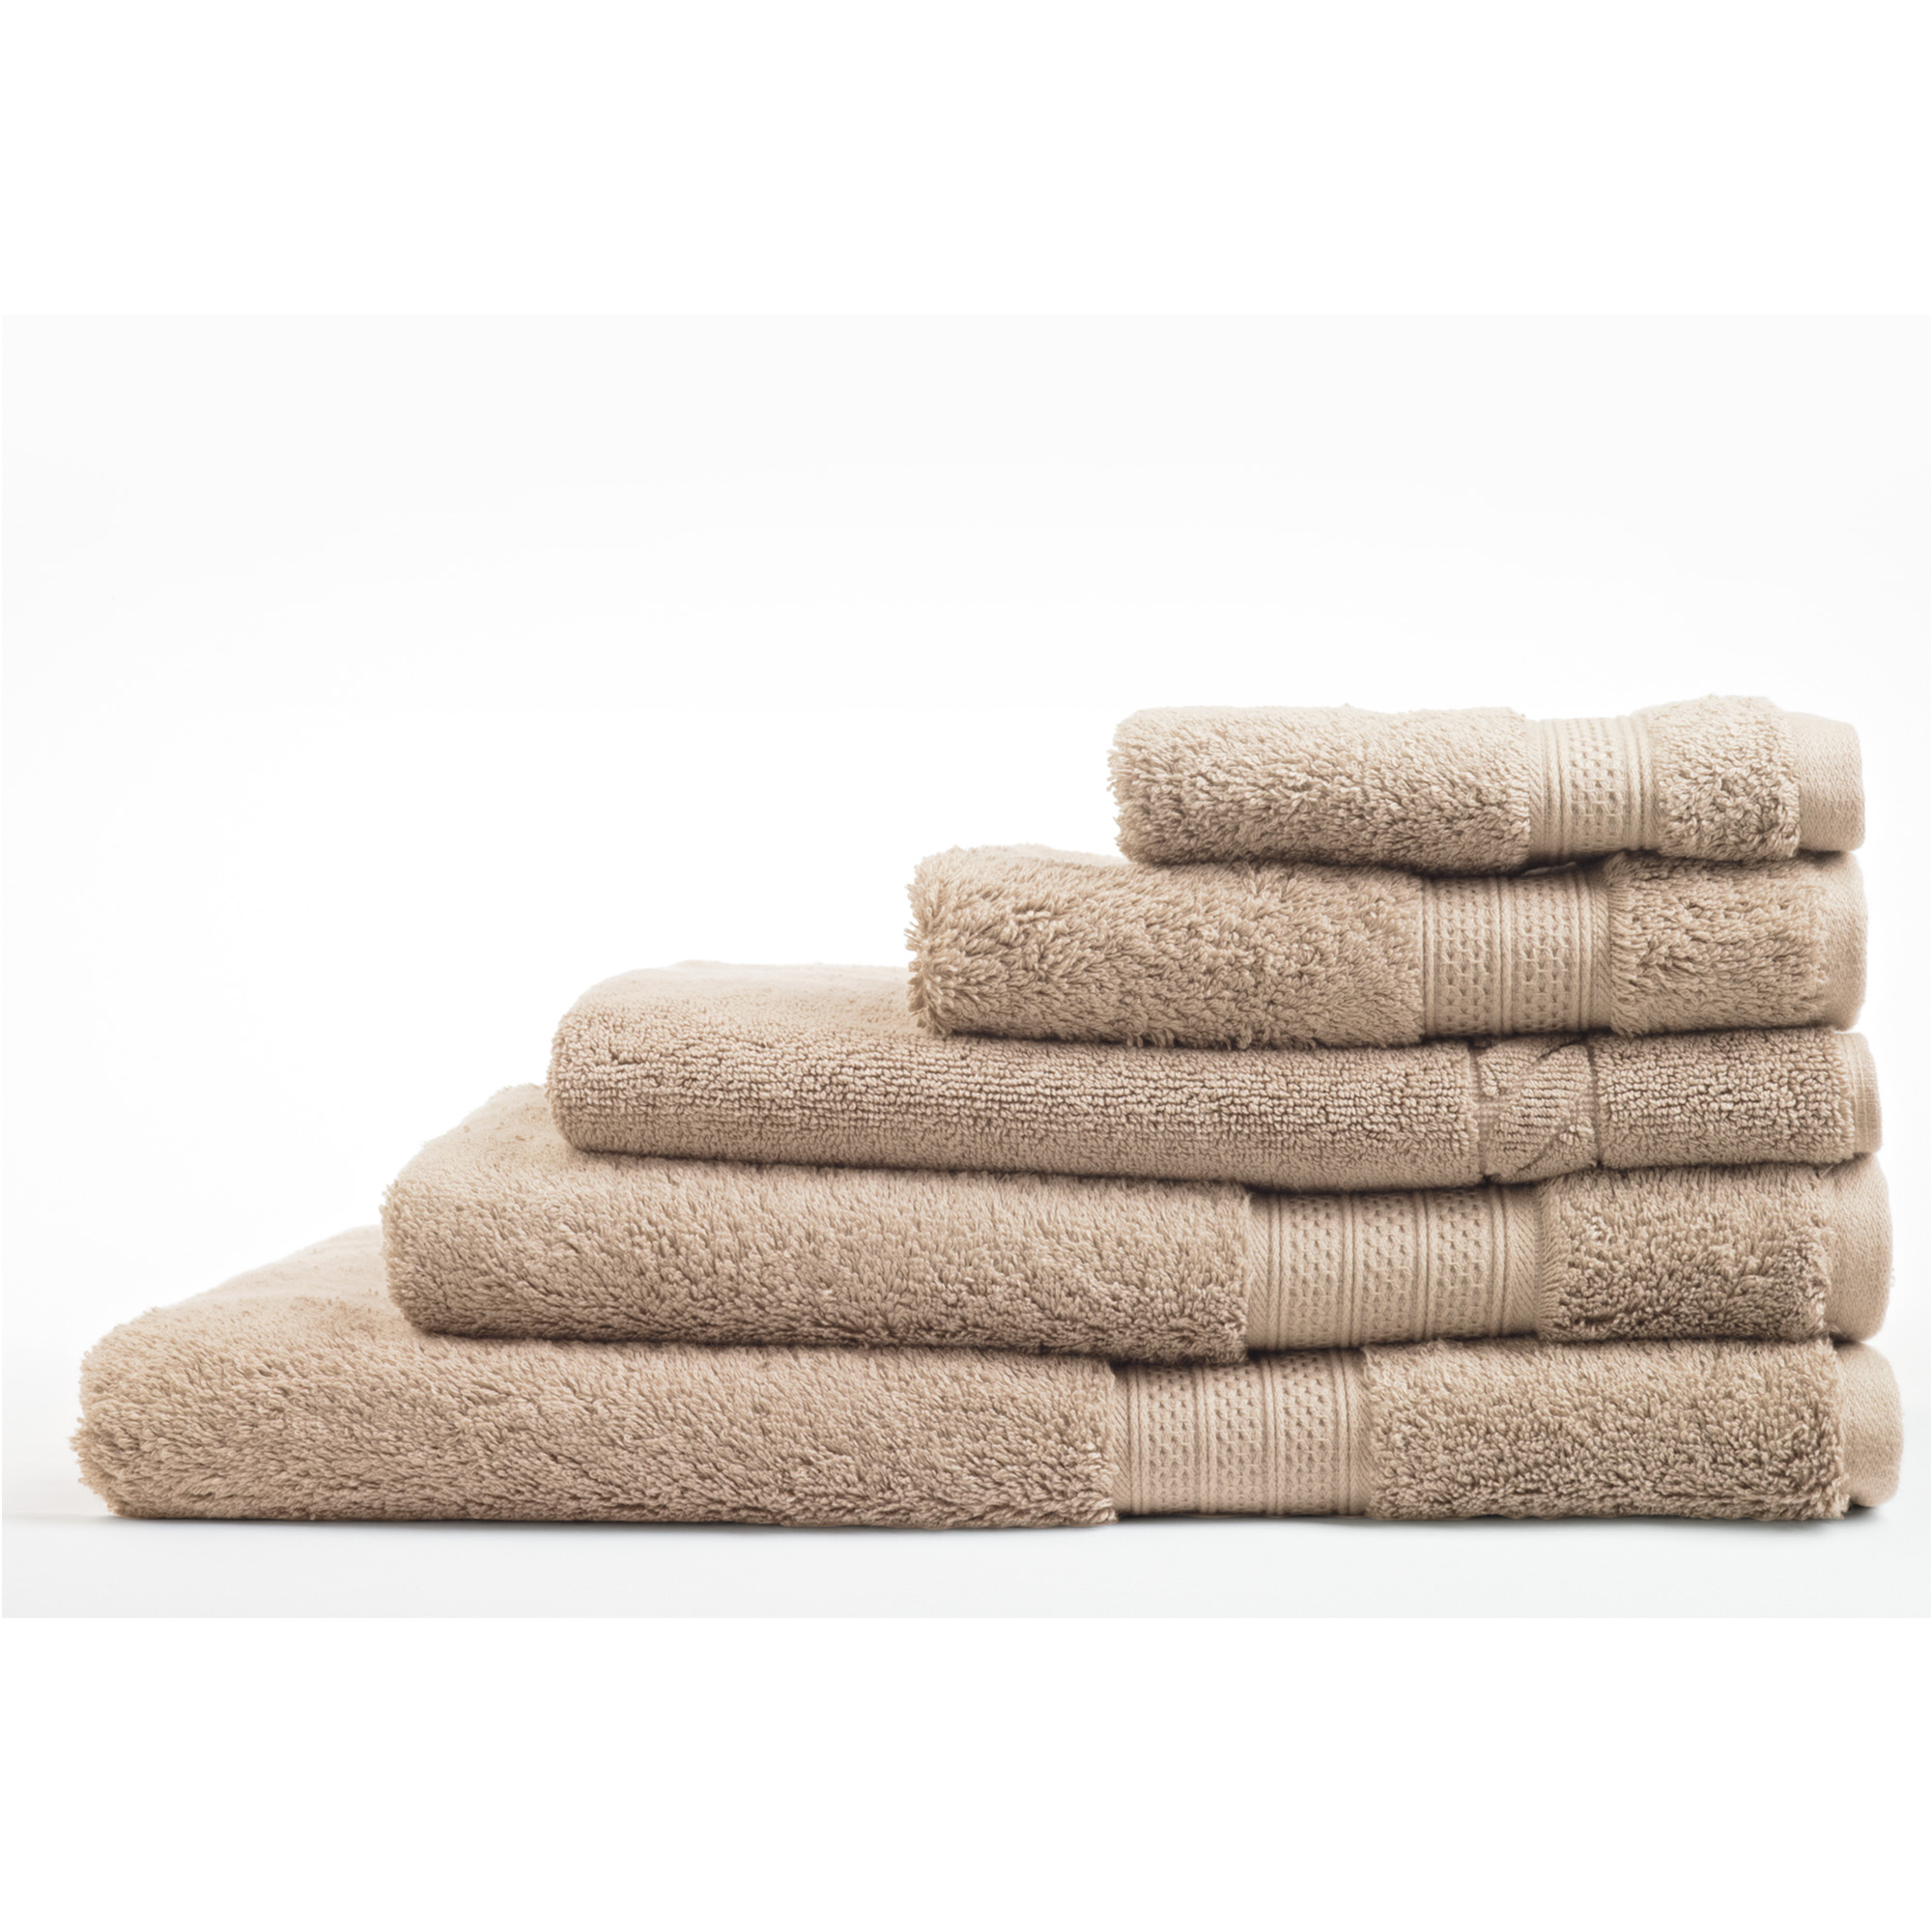 EGYPTIAN LUXURY NATURAL HAND TOWEL